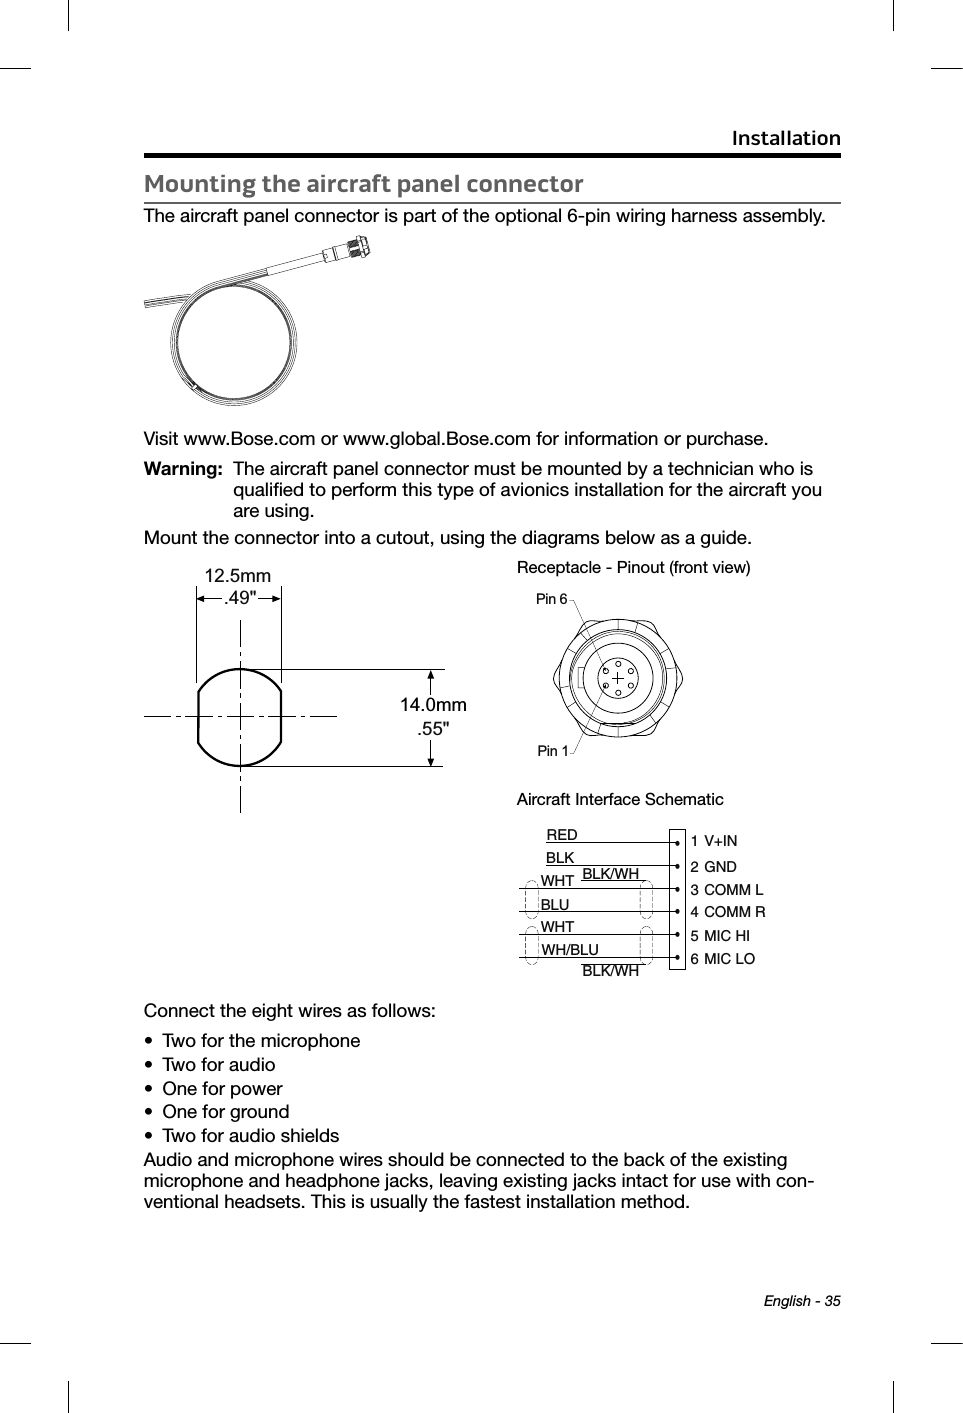 duracell bluetooth headset instructions